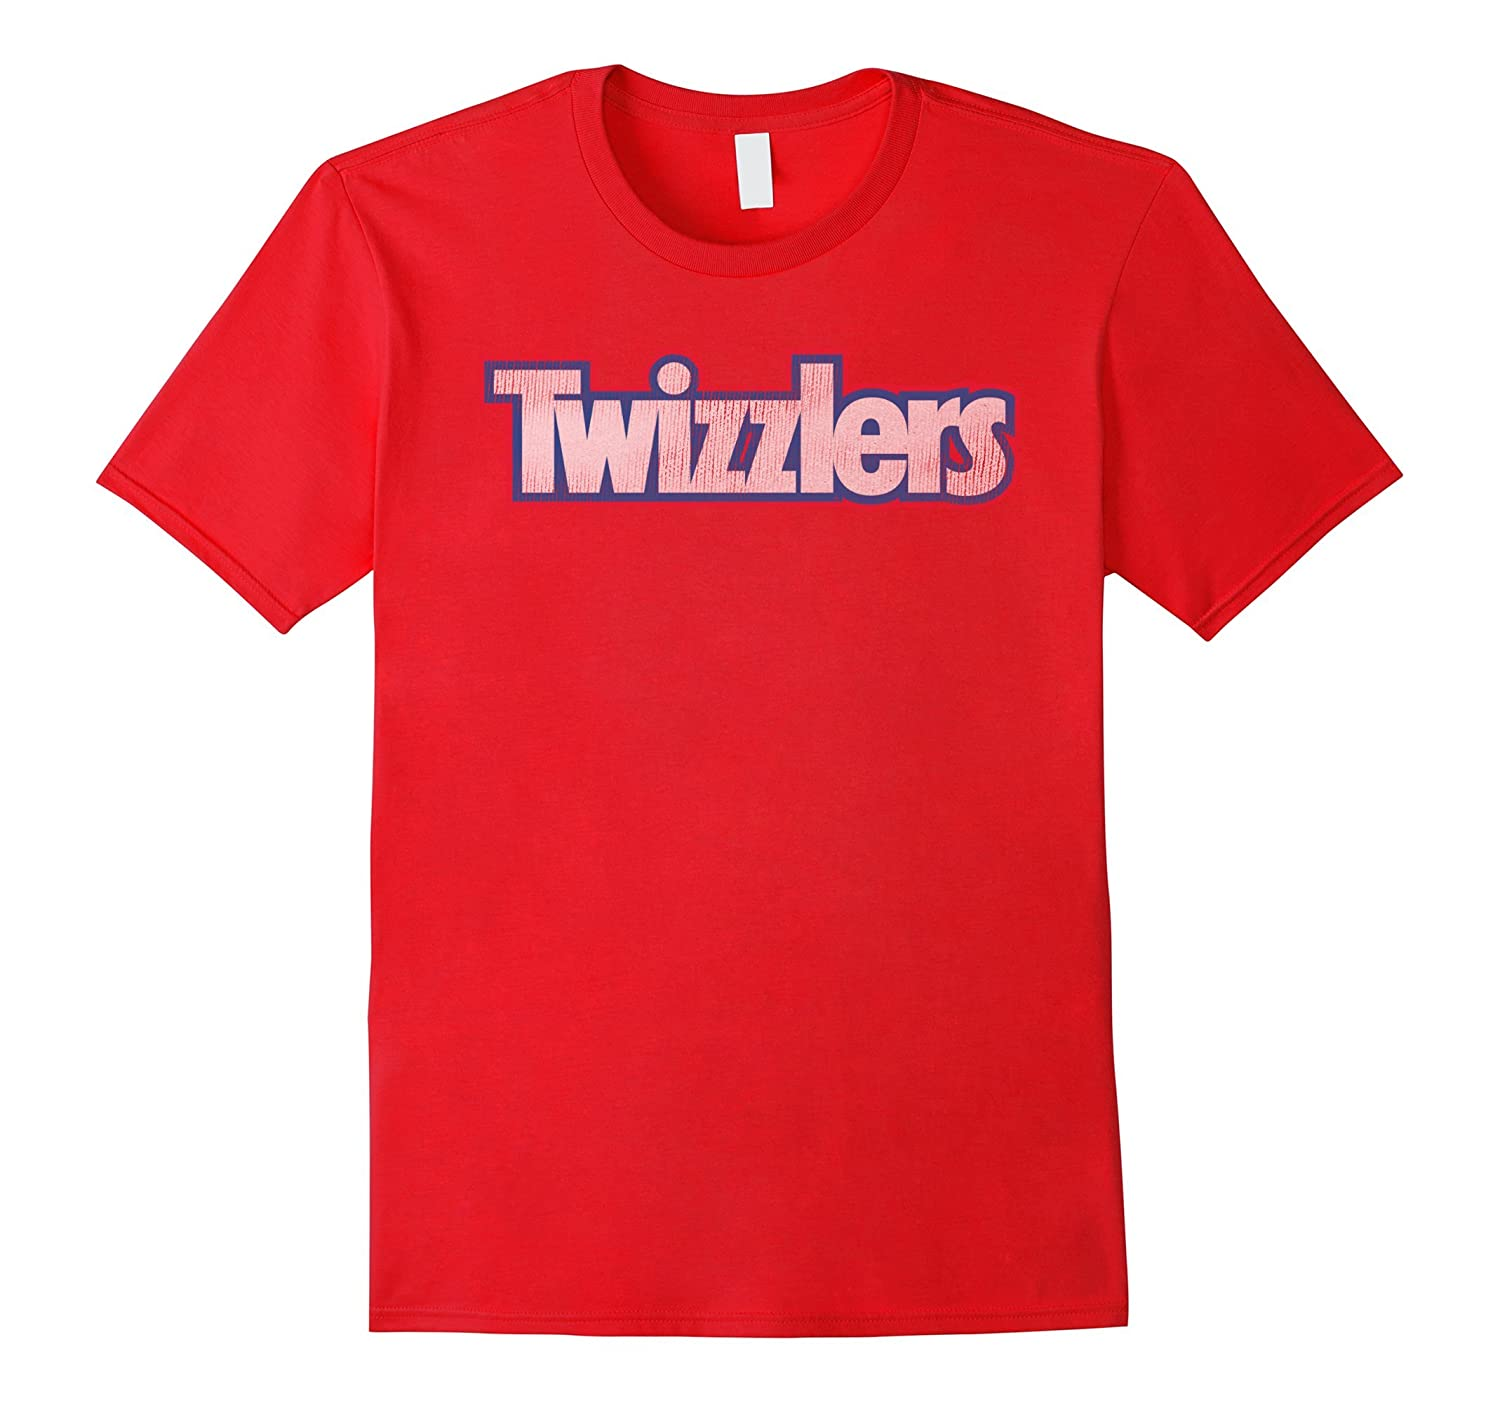 Twizzlers T-Shirt | Classic Look style #27495-FL